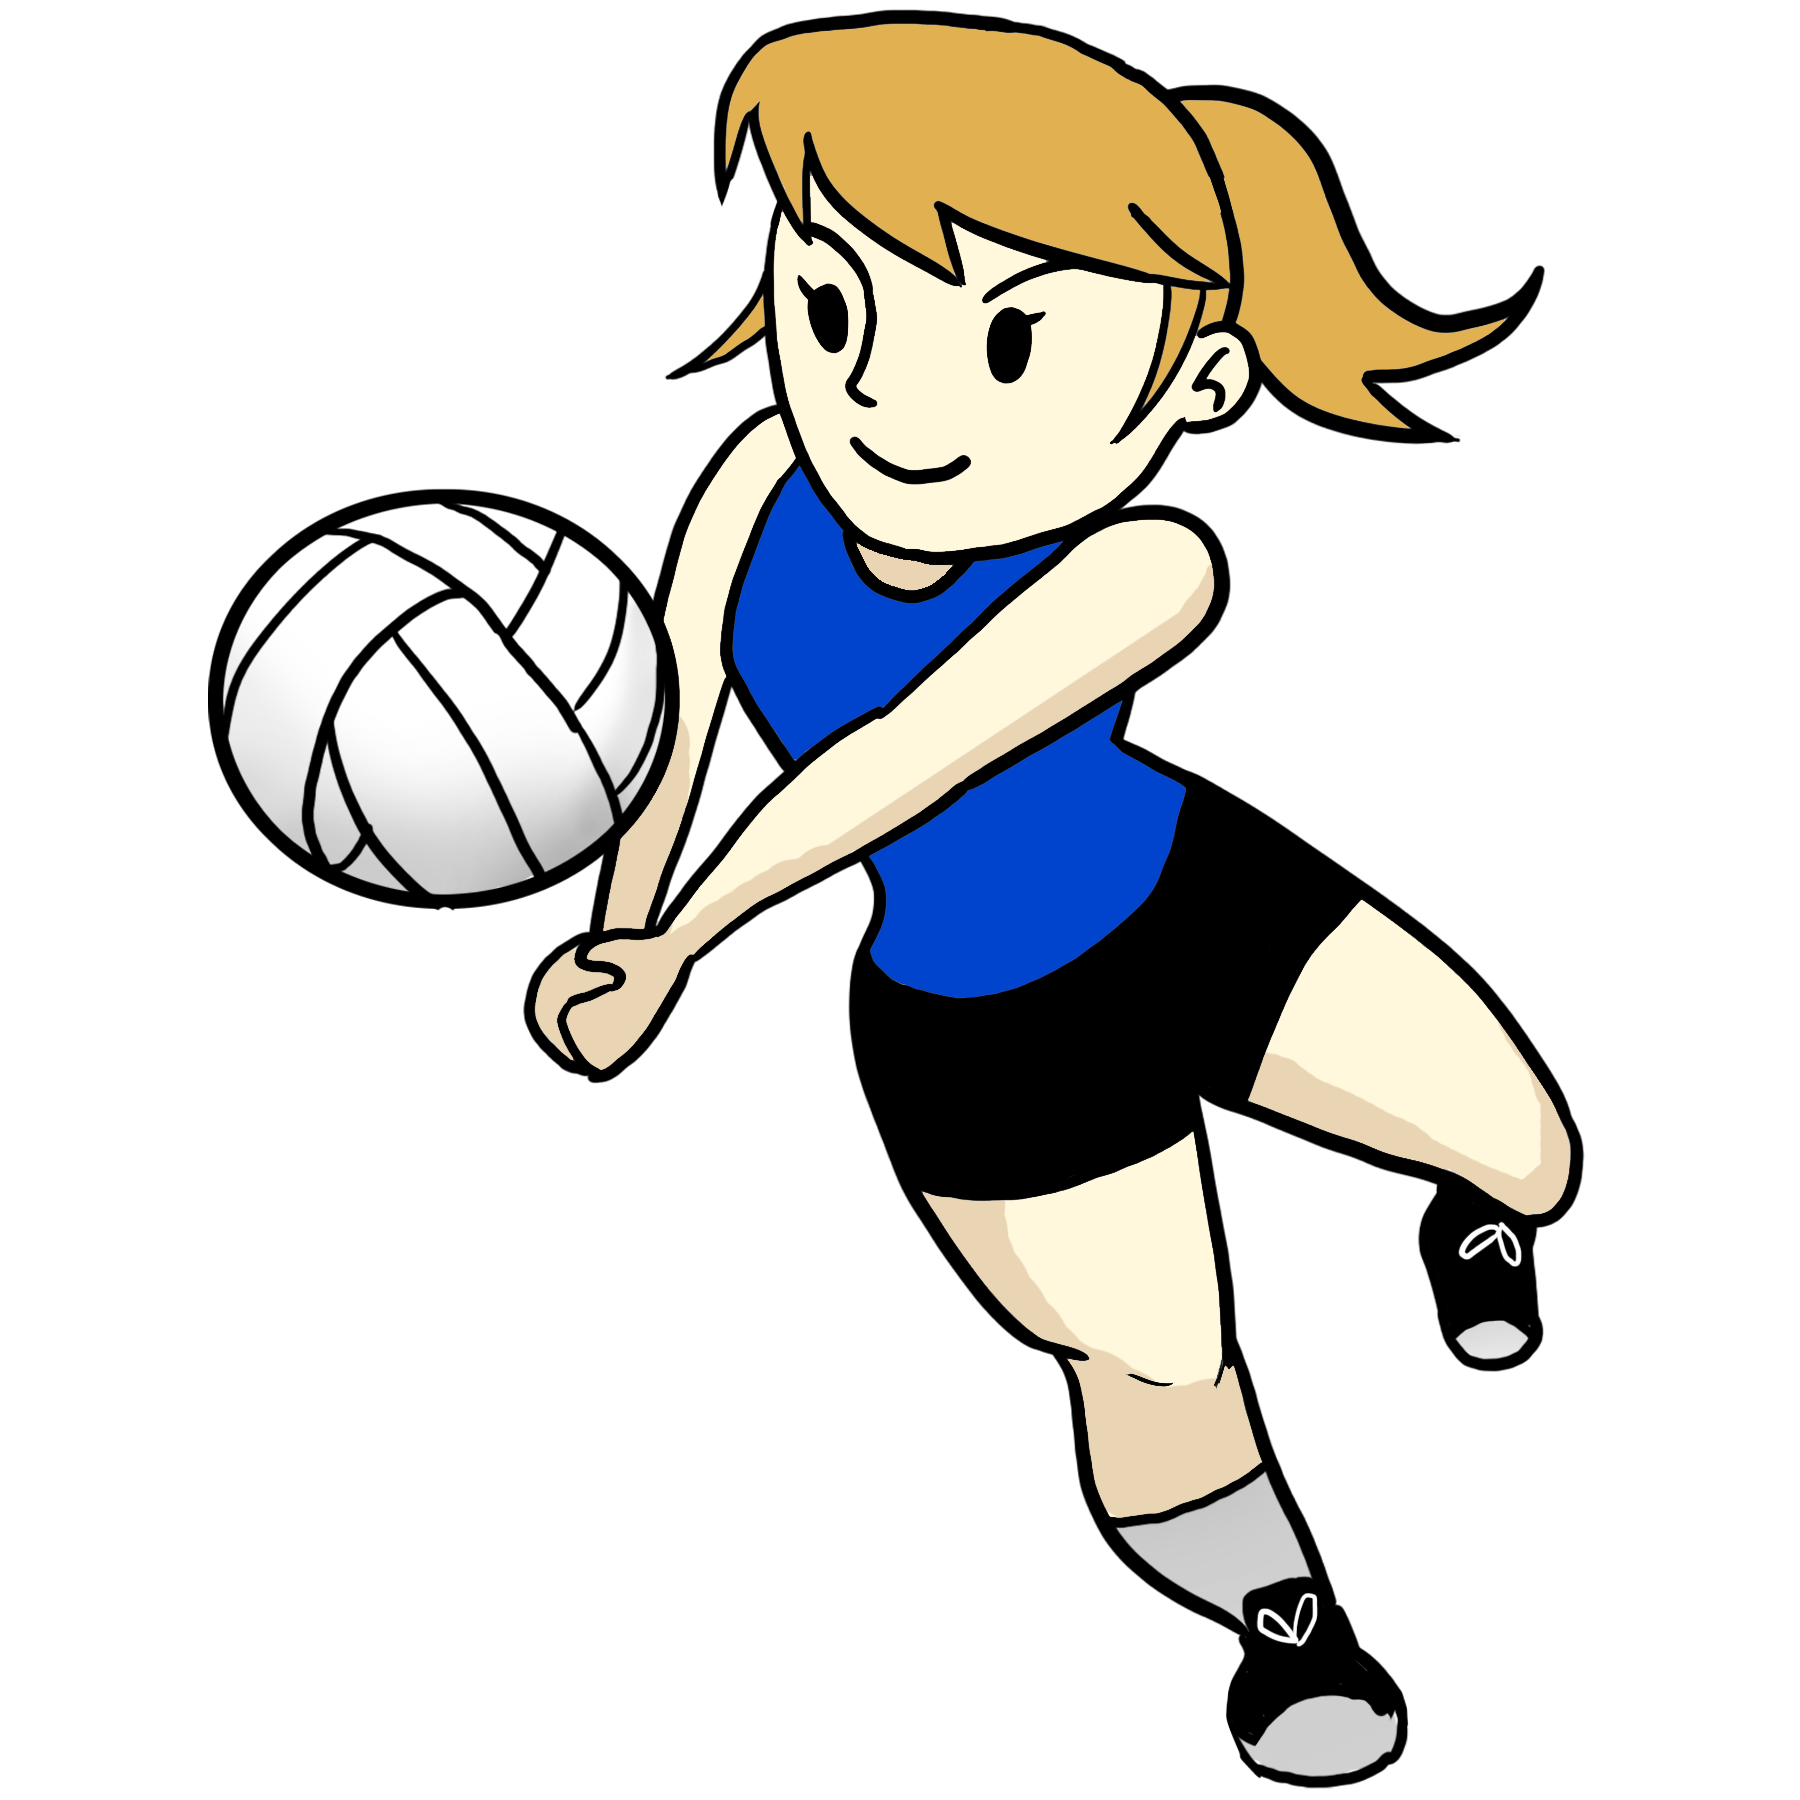 Girl volleyball player clipart graphic royalty free stock Cartoon Volleyball Cliparts - Free Clipart graphic royalty free stock